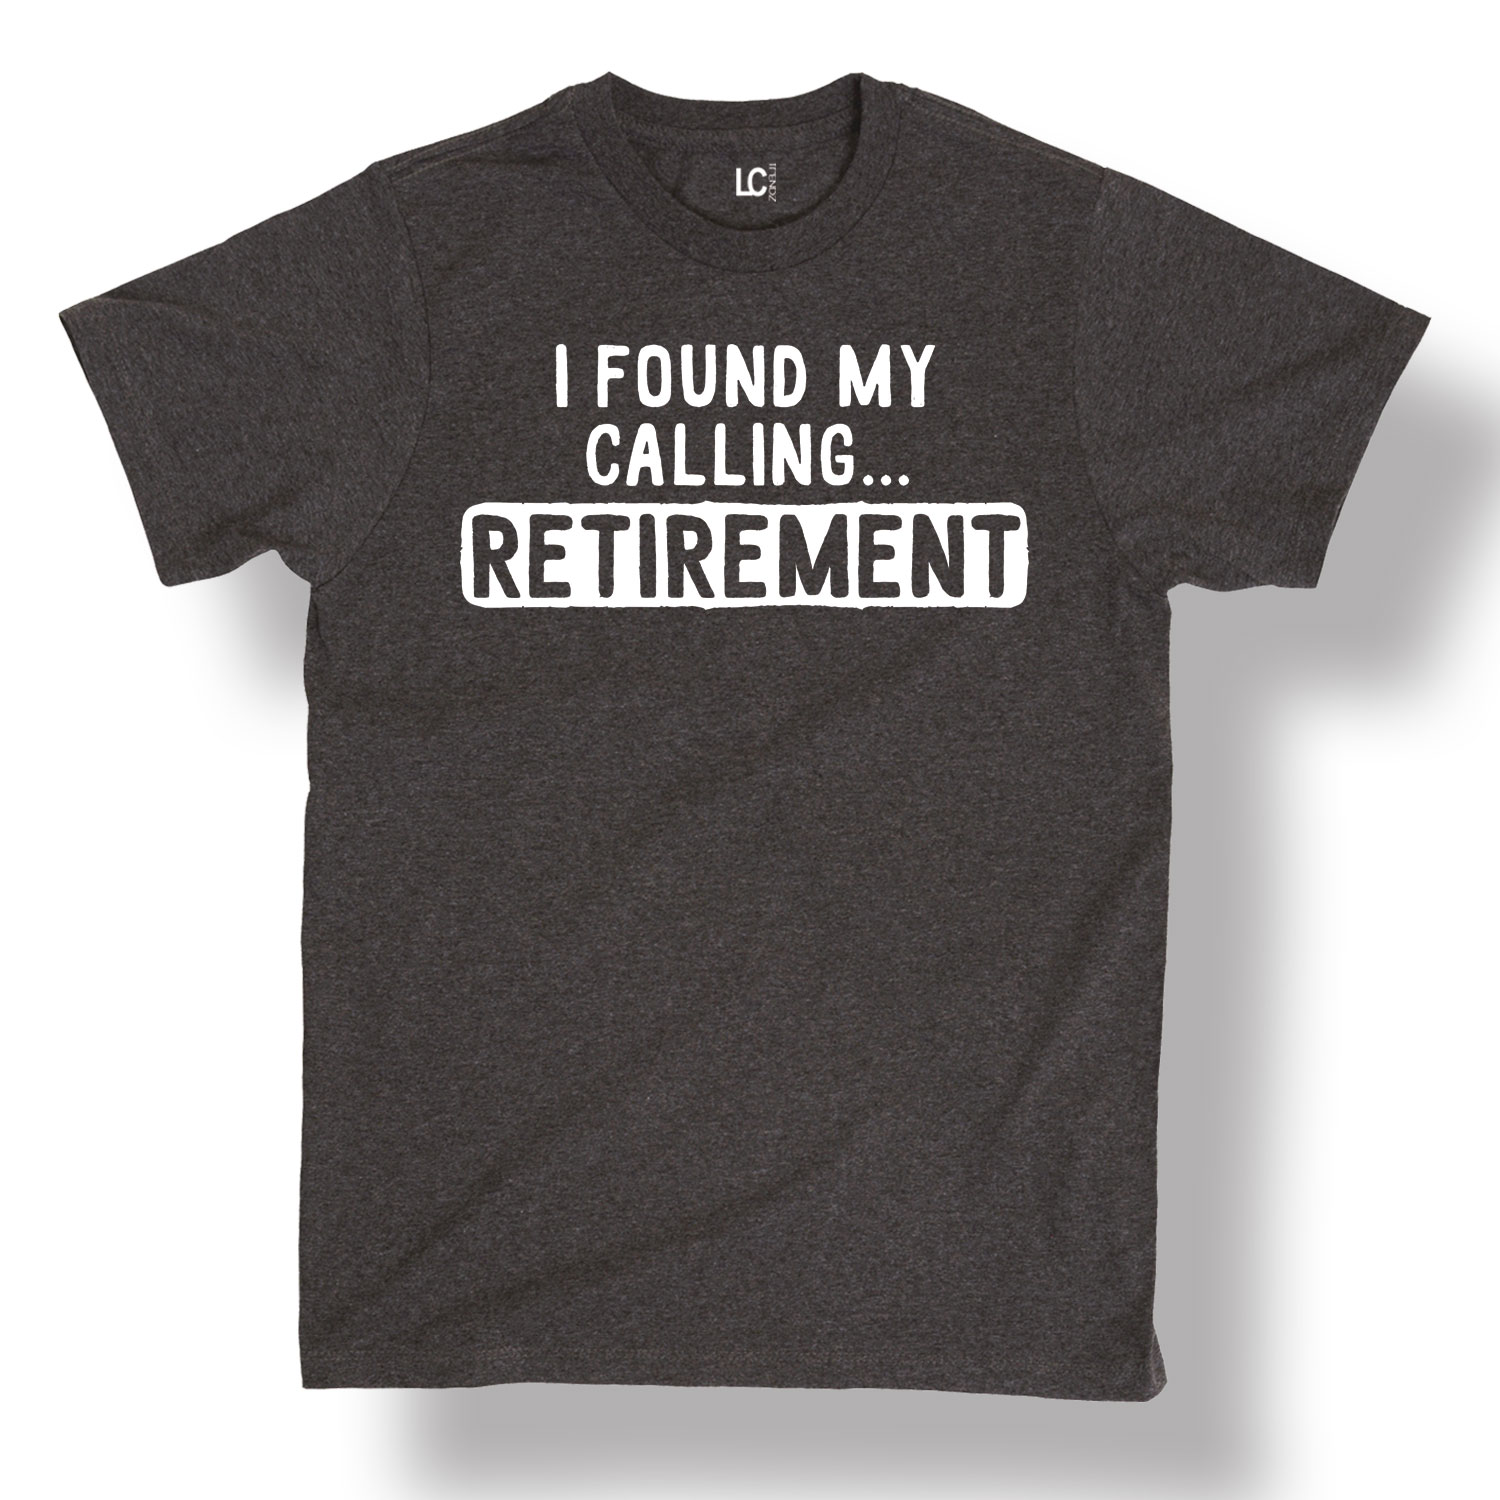 I Found My Calling Retirement - Adult Short Sleeve Tee